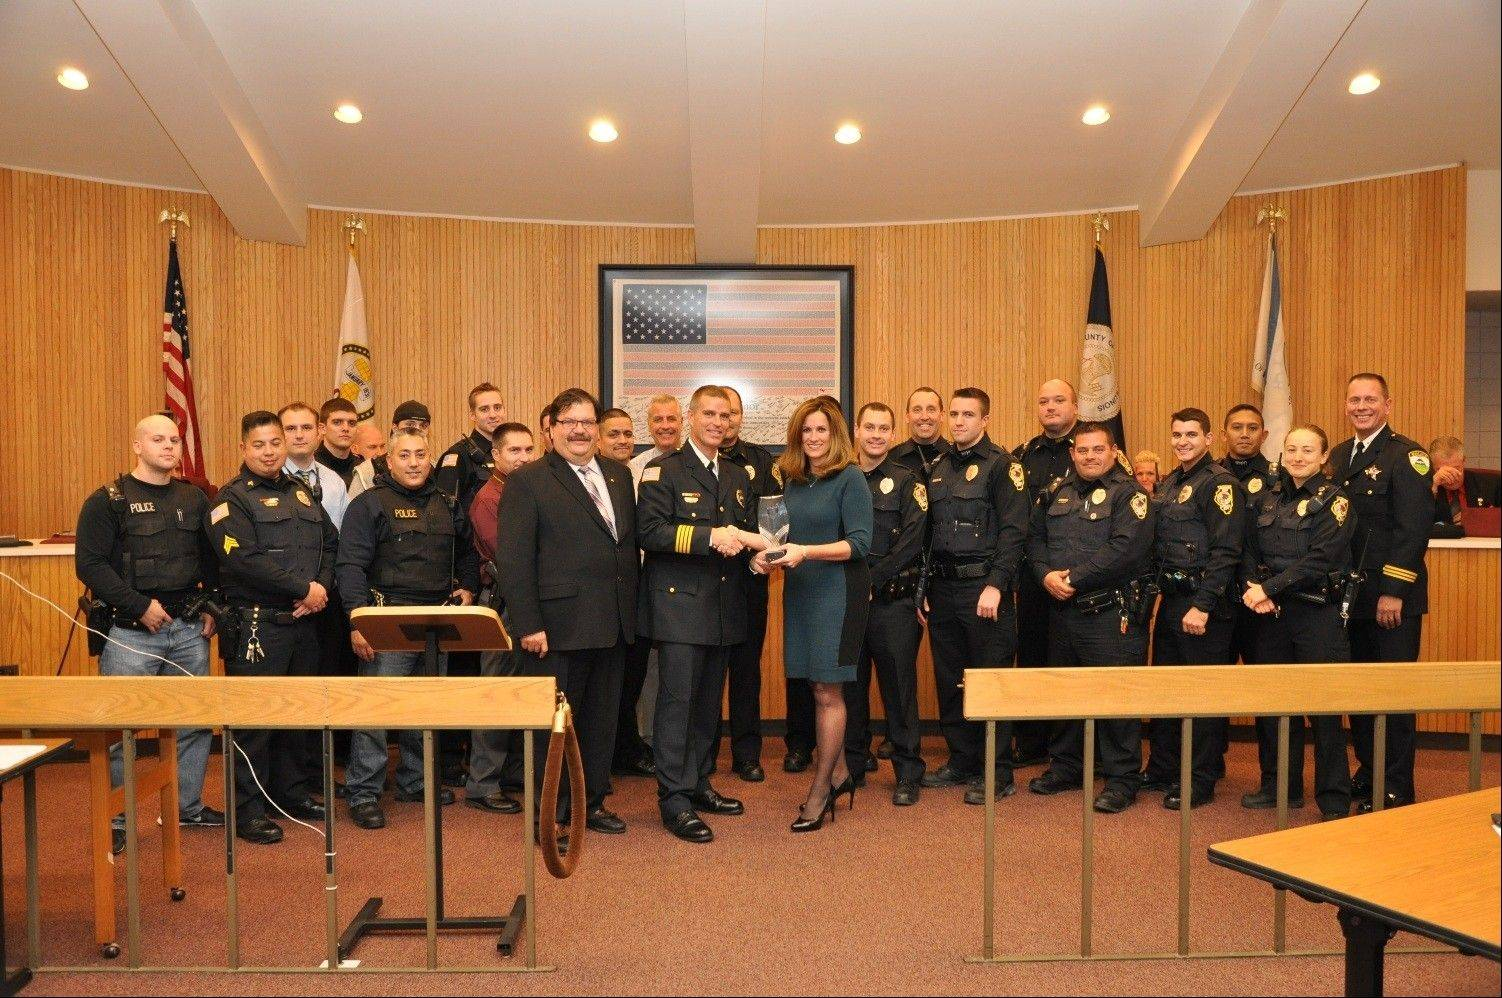 Pictured at the village board meeting are: Village President Rod Craig; Police Chief David Webb; Kim Majerus, vice president of Cisco; and to the far right, Itasca Police Chief and IACP Community Policing Committee representative Scott Heher and several officers from the Hanover Park Police Department.